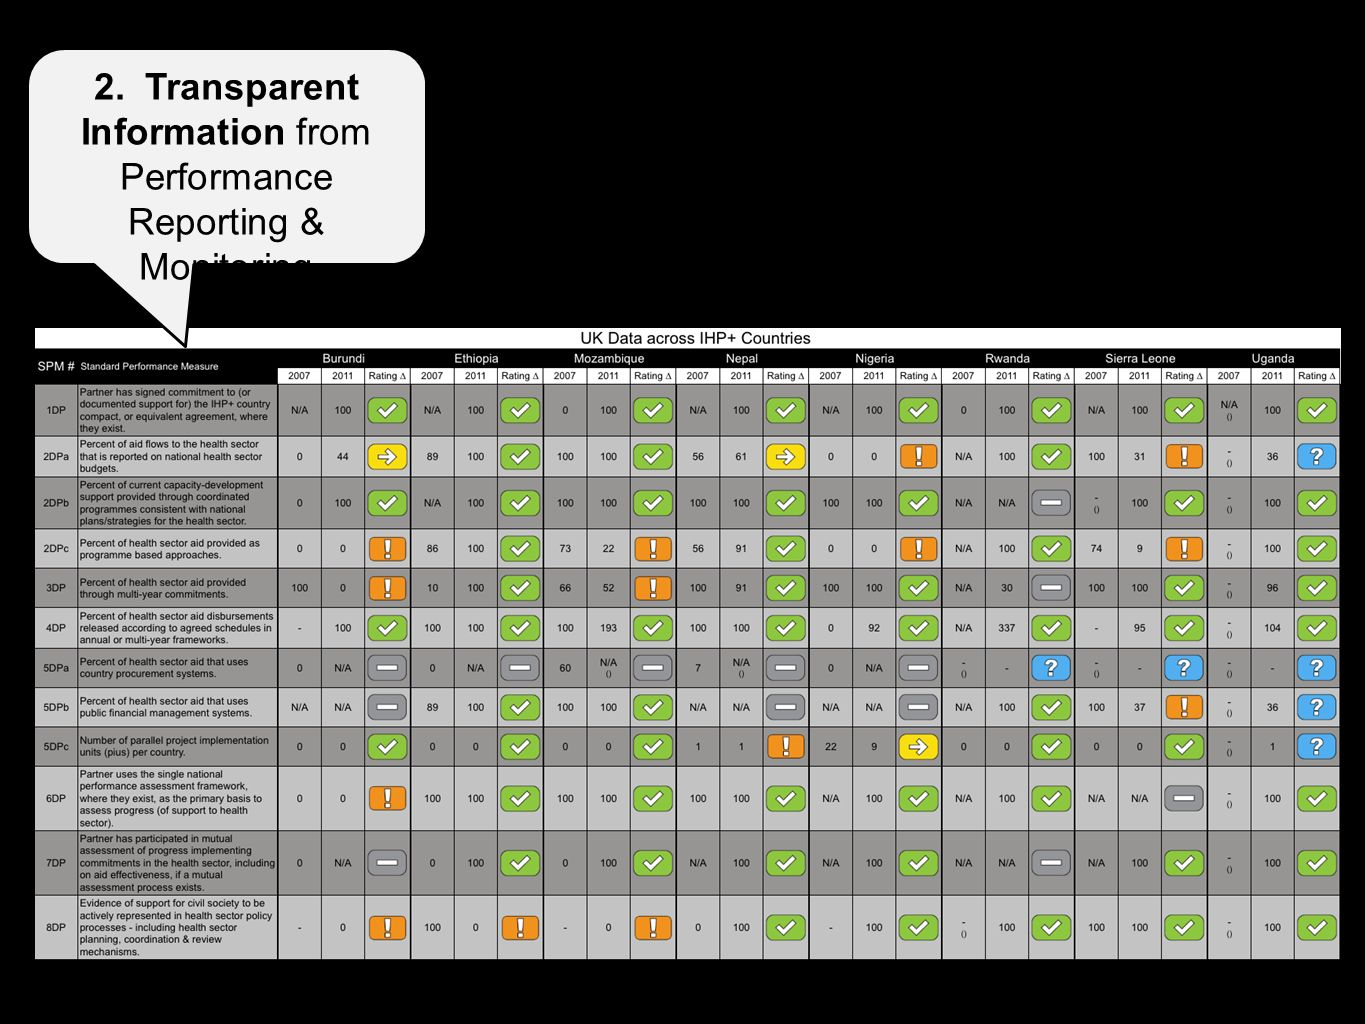 2. Transparent Information from Performance Reporting & Monitoring